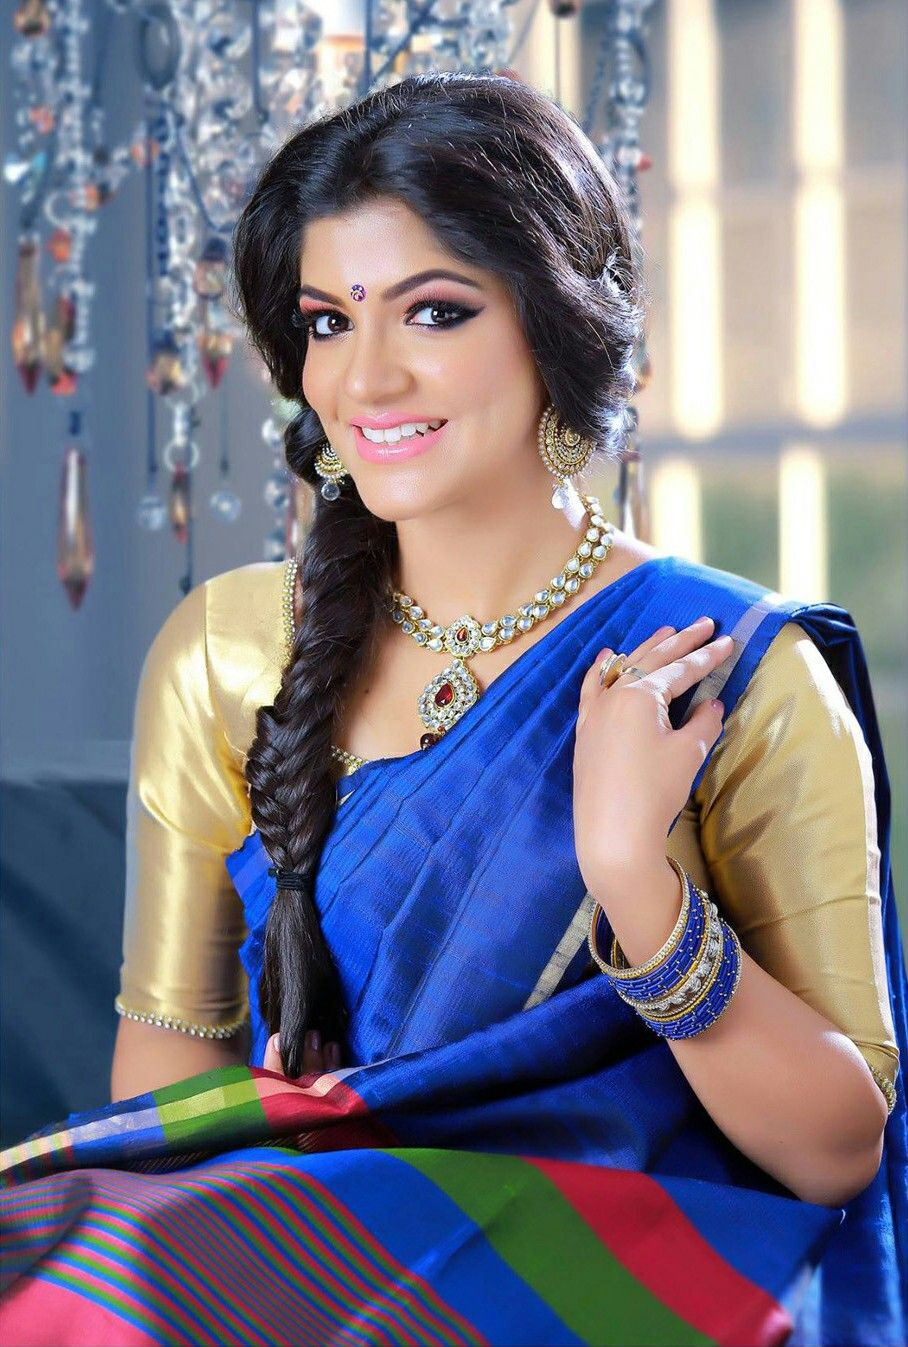 Pin on South Indian Beauties